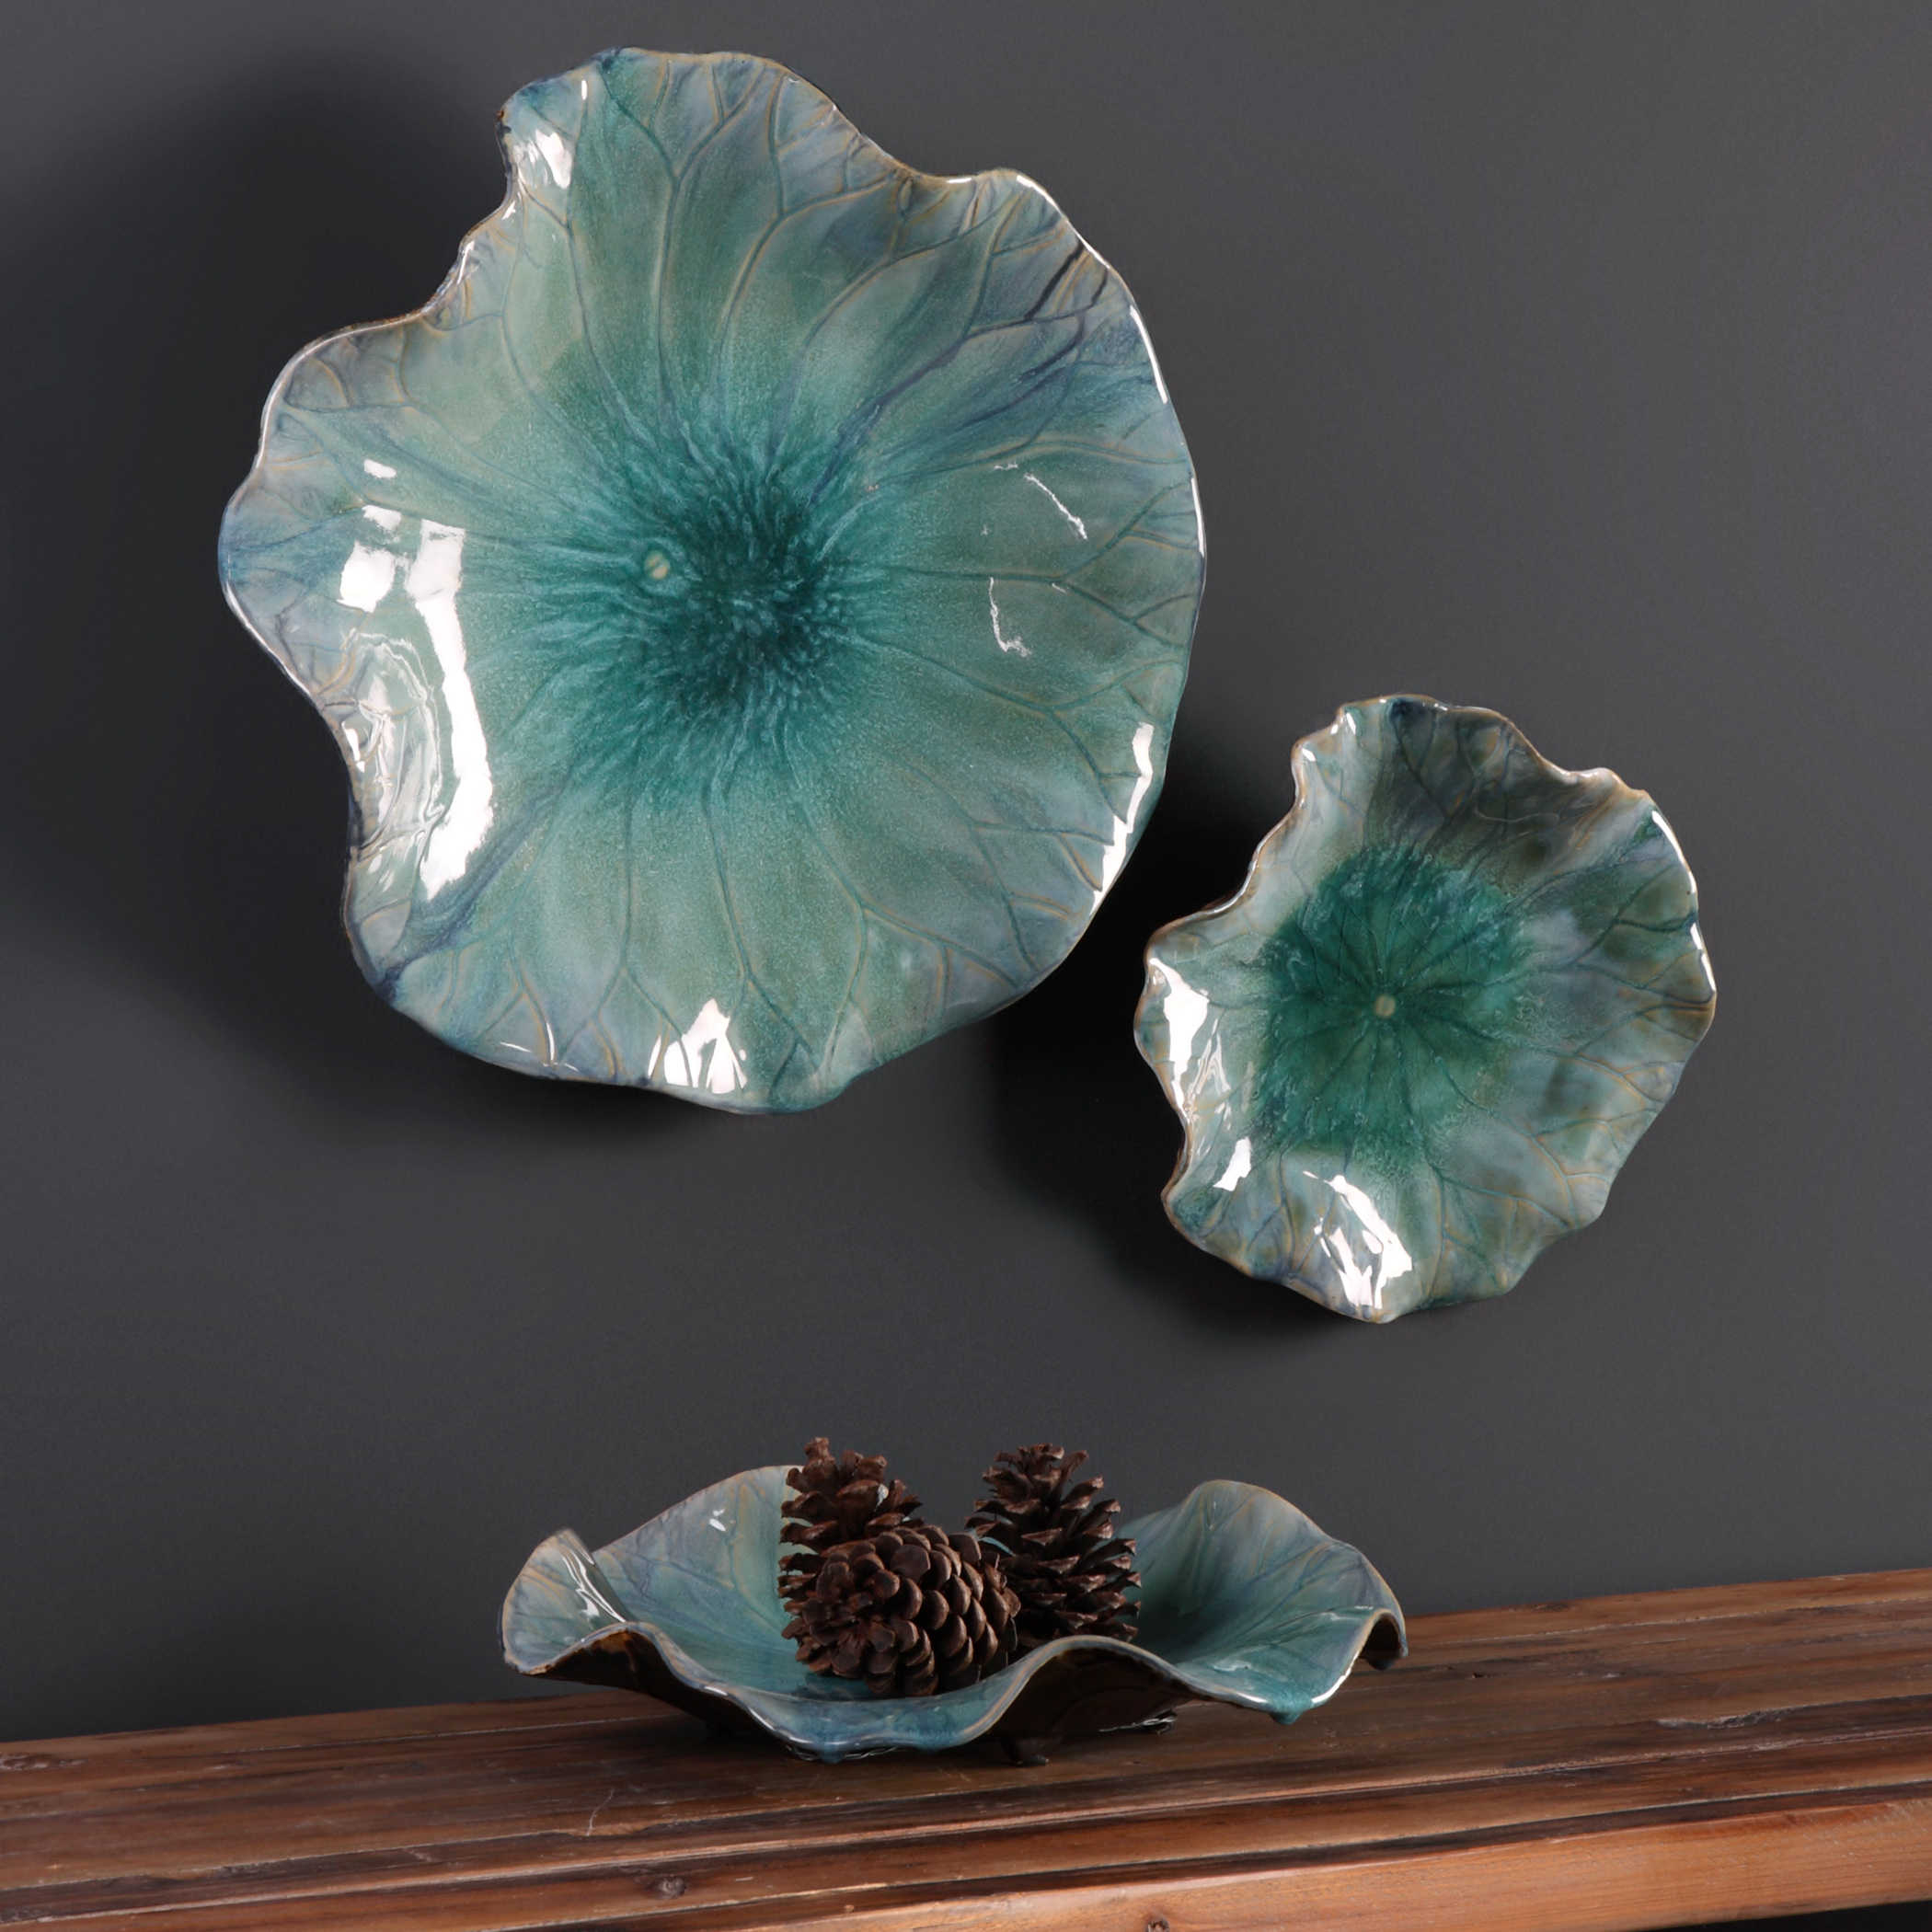 Uttermost Abella Ceramic Wall Decor S/3 Throughout 2020 3 Piece Ceramic Flowers Wall Decor Sets (Gallery 11 of 20)